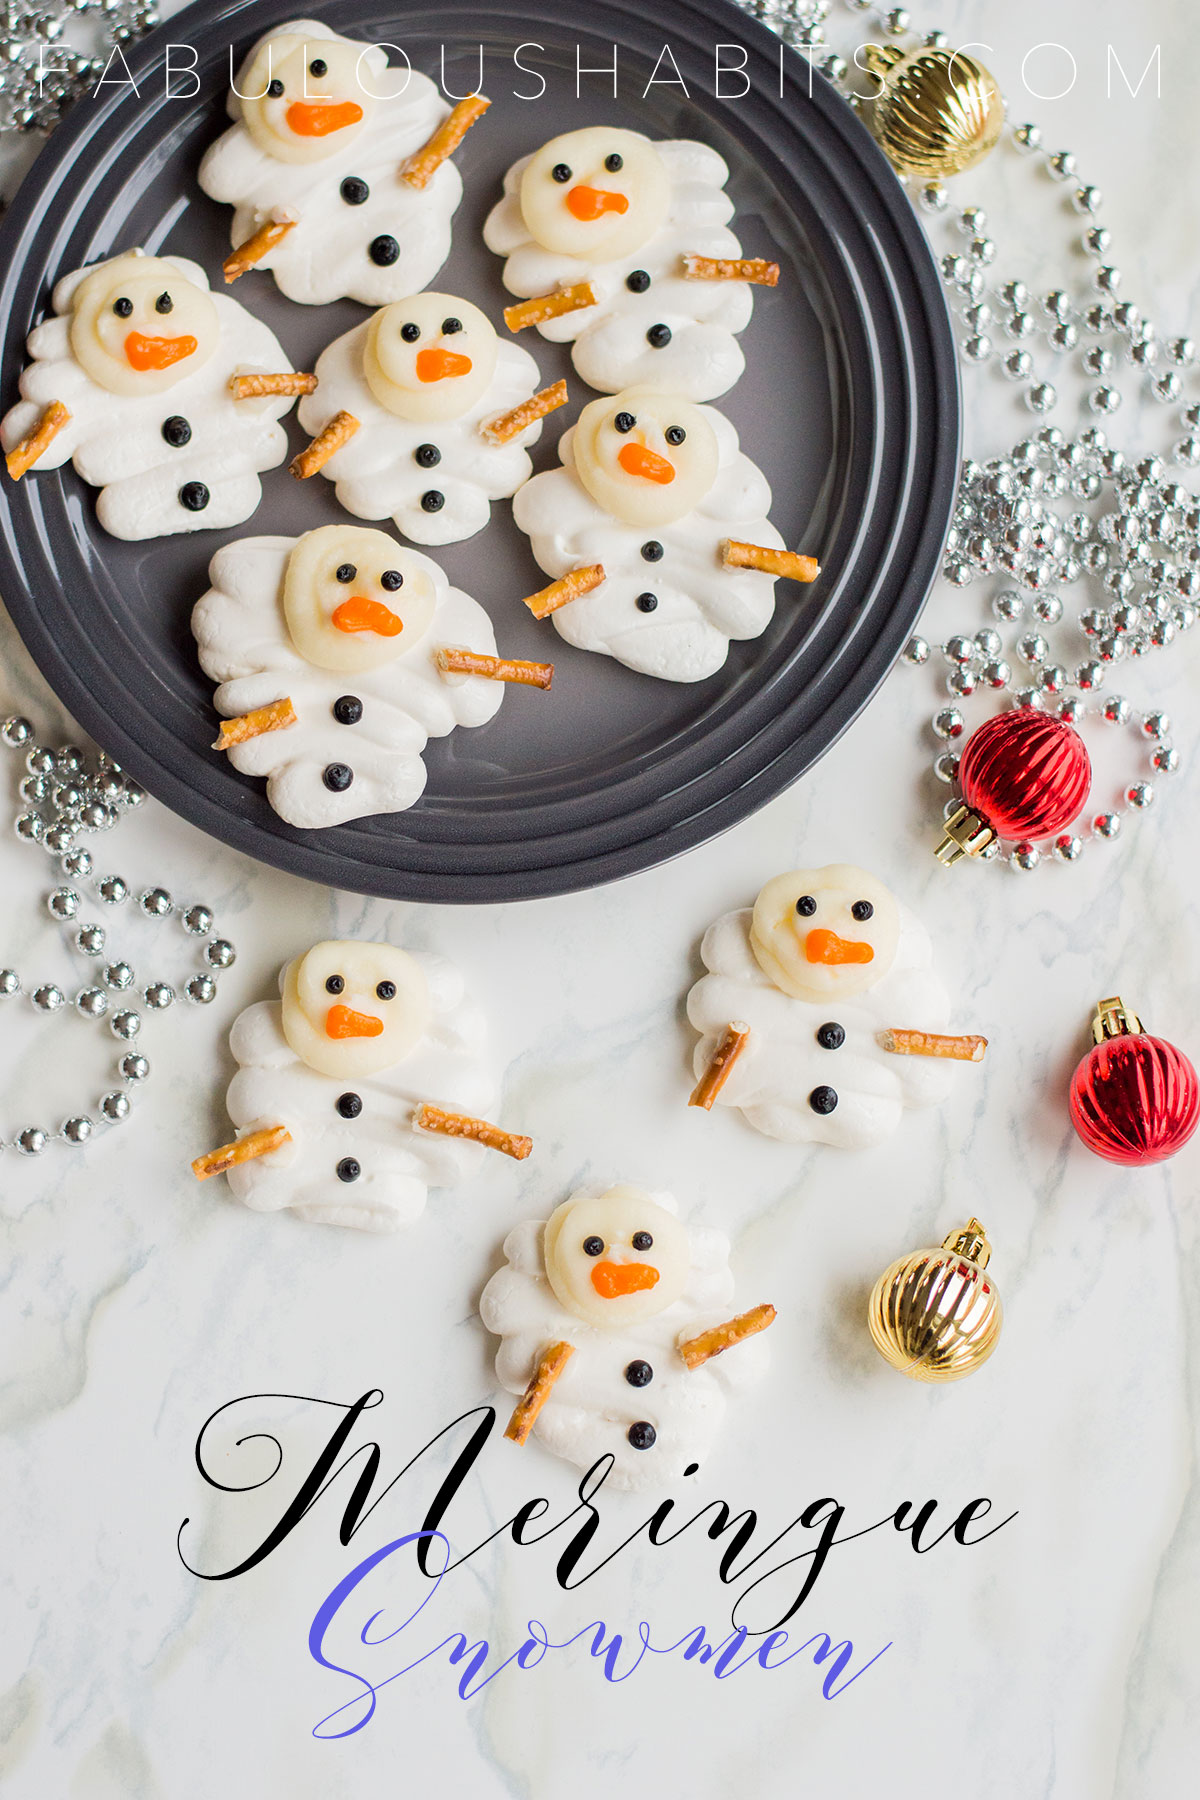 These meringue snowmen cookies will be the showstopper at your upcoming holiday party. Check out our step-by-step instructions on how to whip them up! #meringuecookies